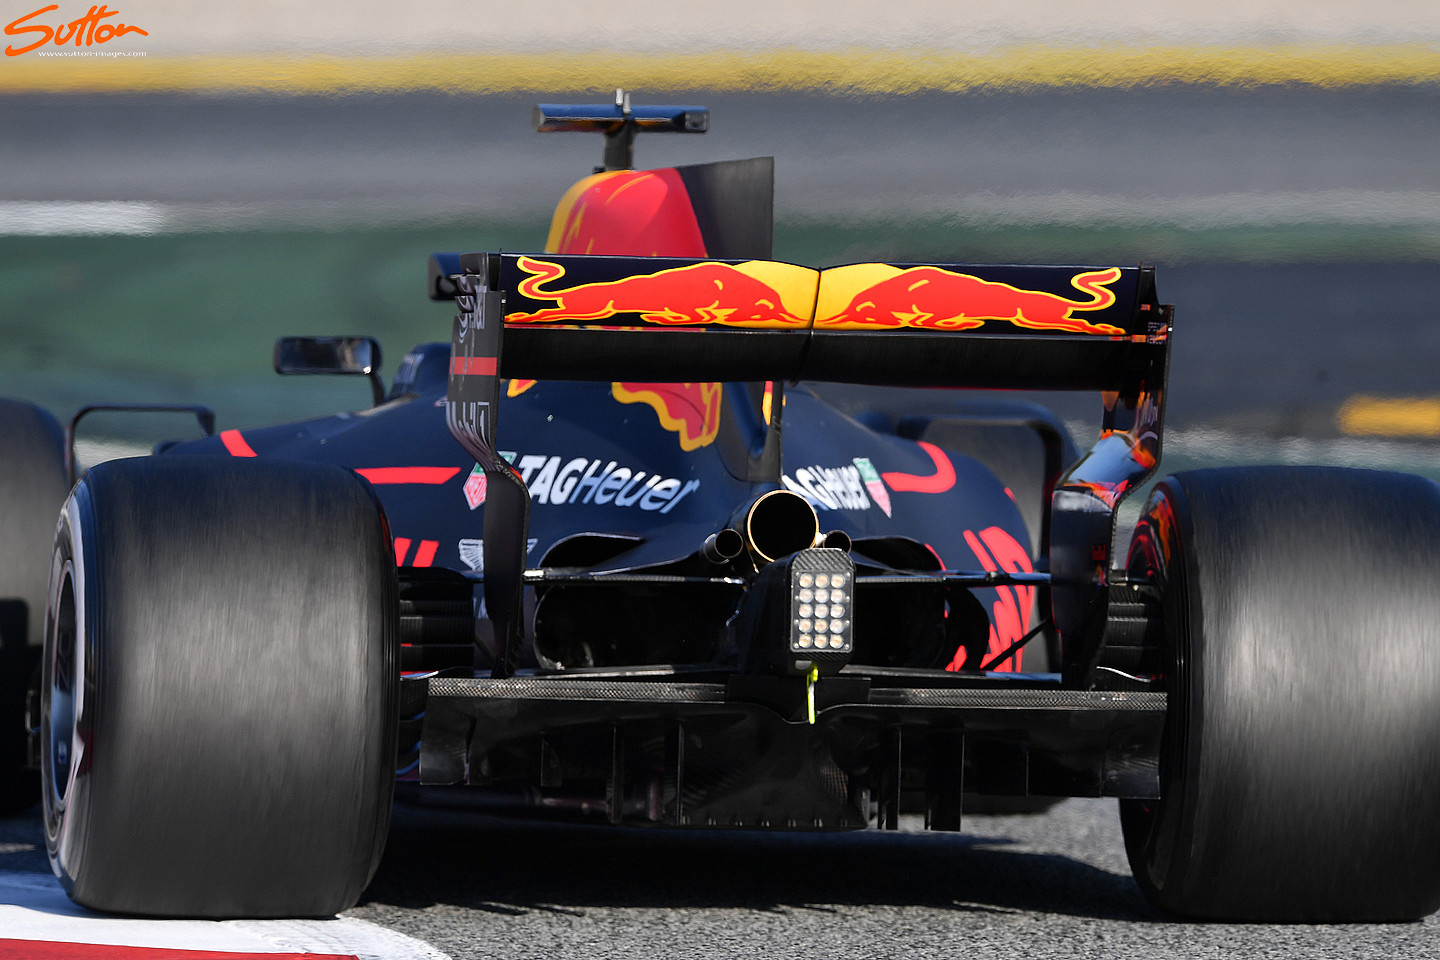 rb13-diffuser